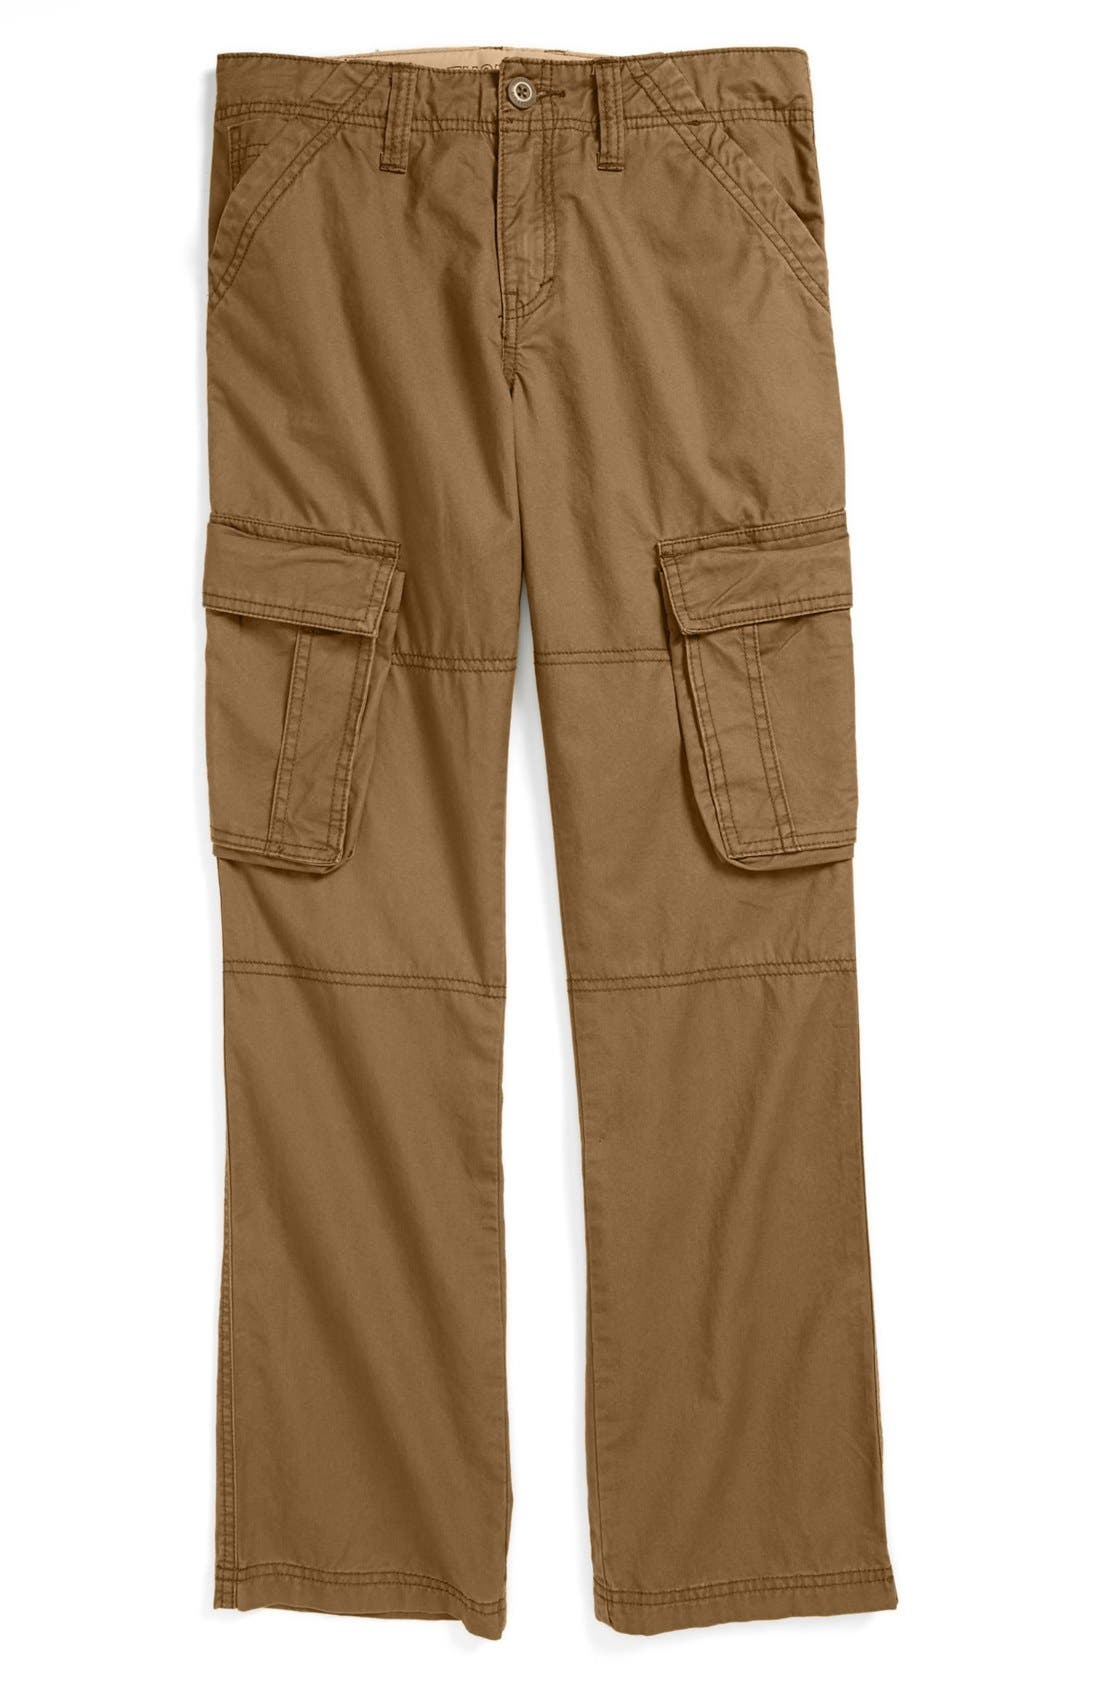 Main Image - Tucker + Tate 'Cargo' Pants (Toddler Boys & Little Boys)